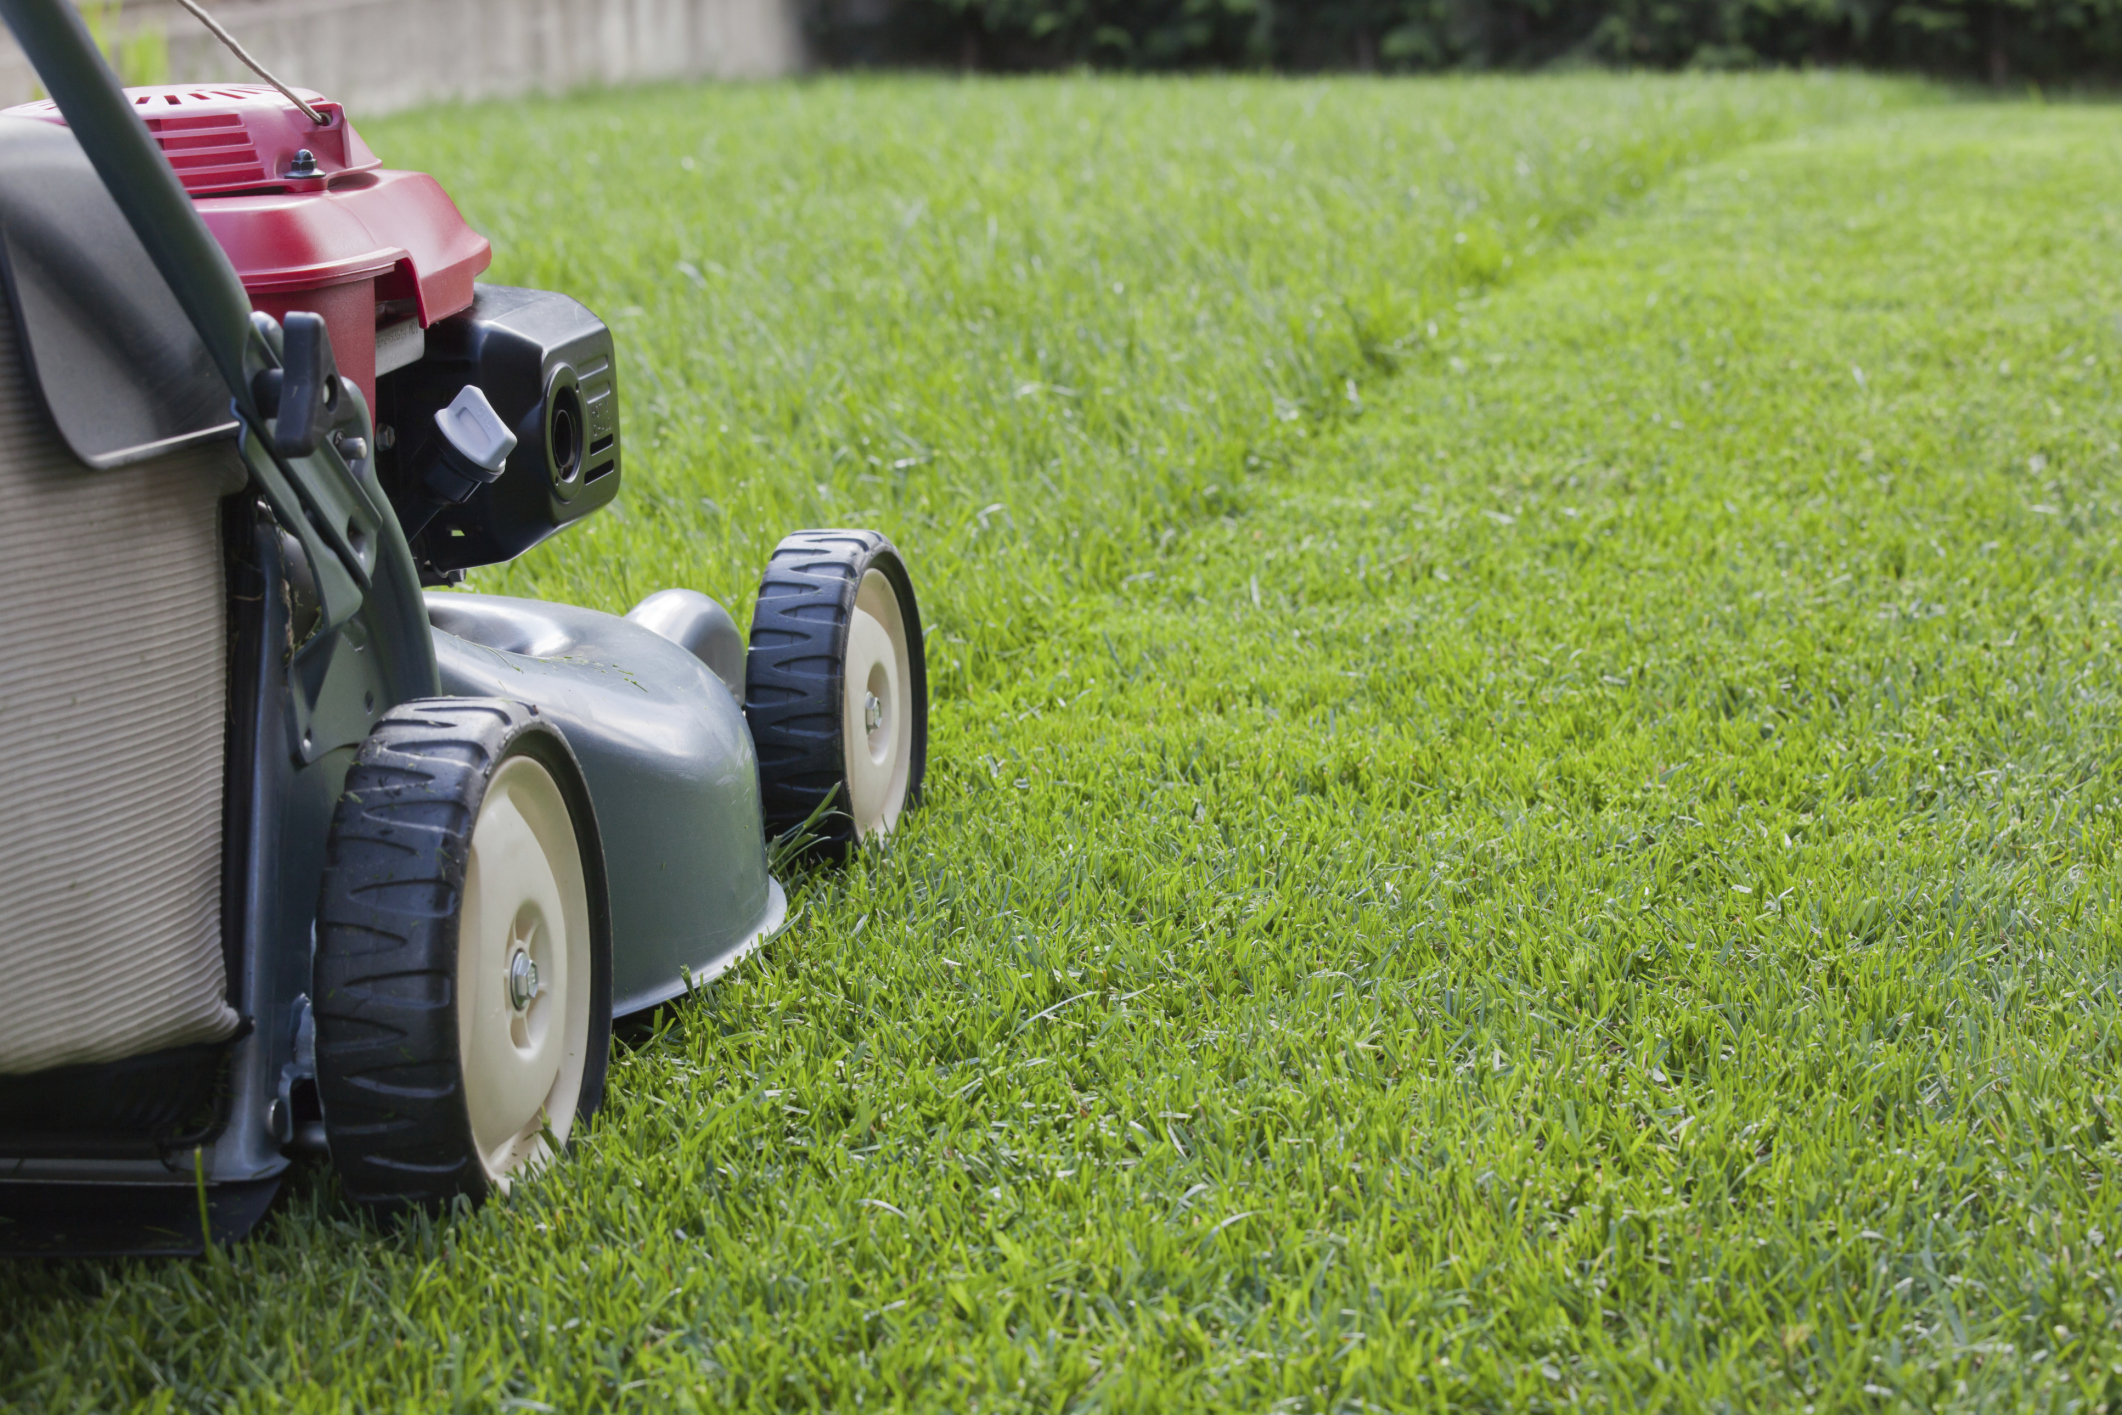 Garden Plot: Summer lawn care do's and don'ts